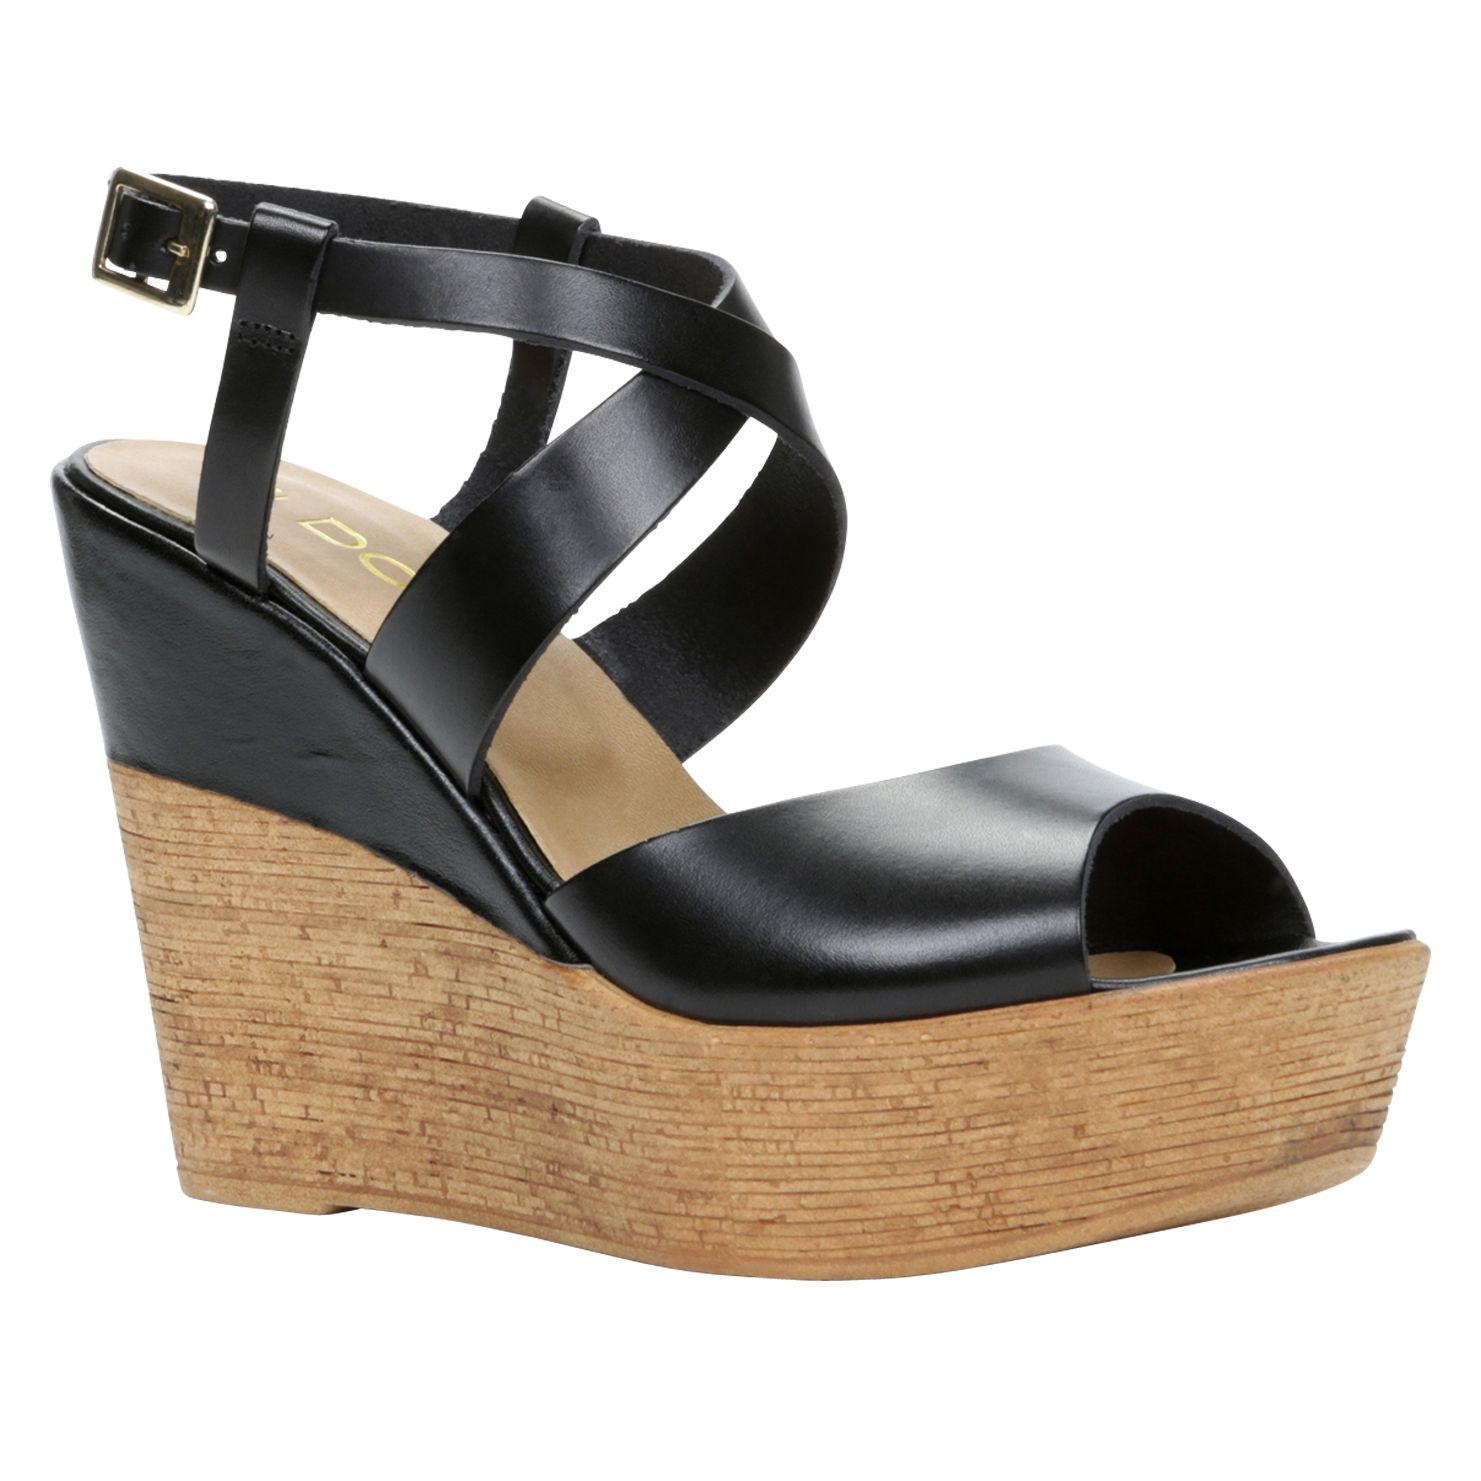 Dradolle ankle strap wedge sandals